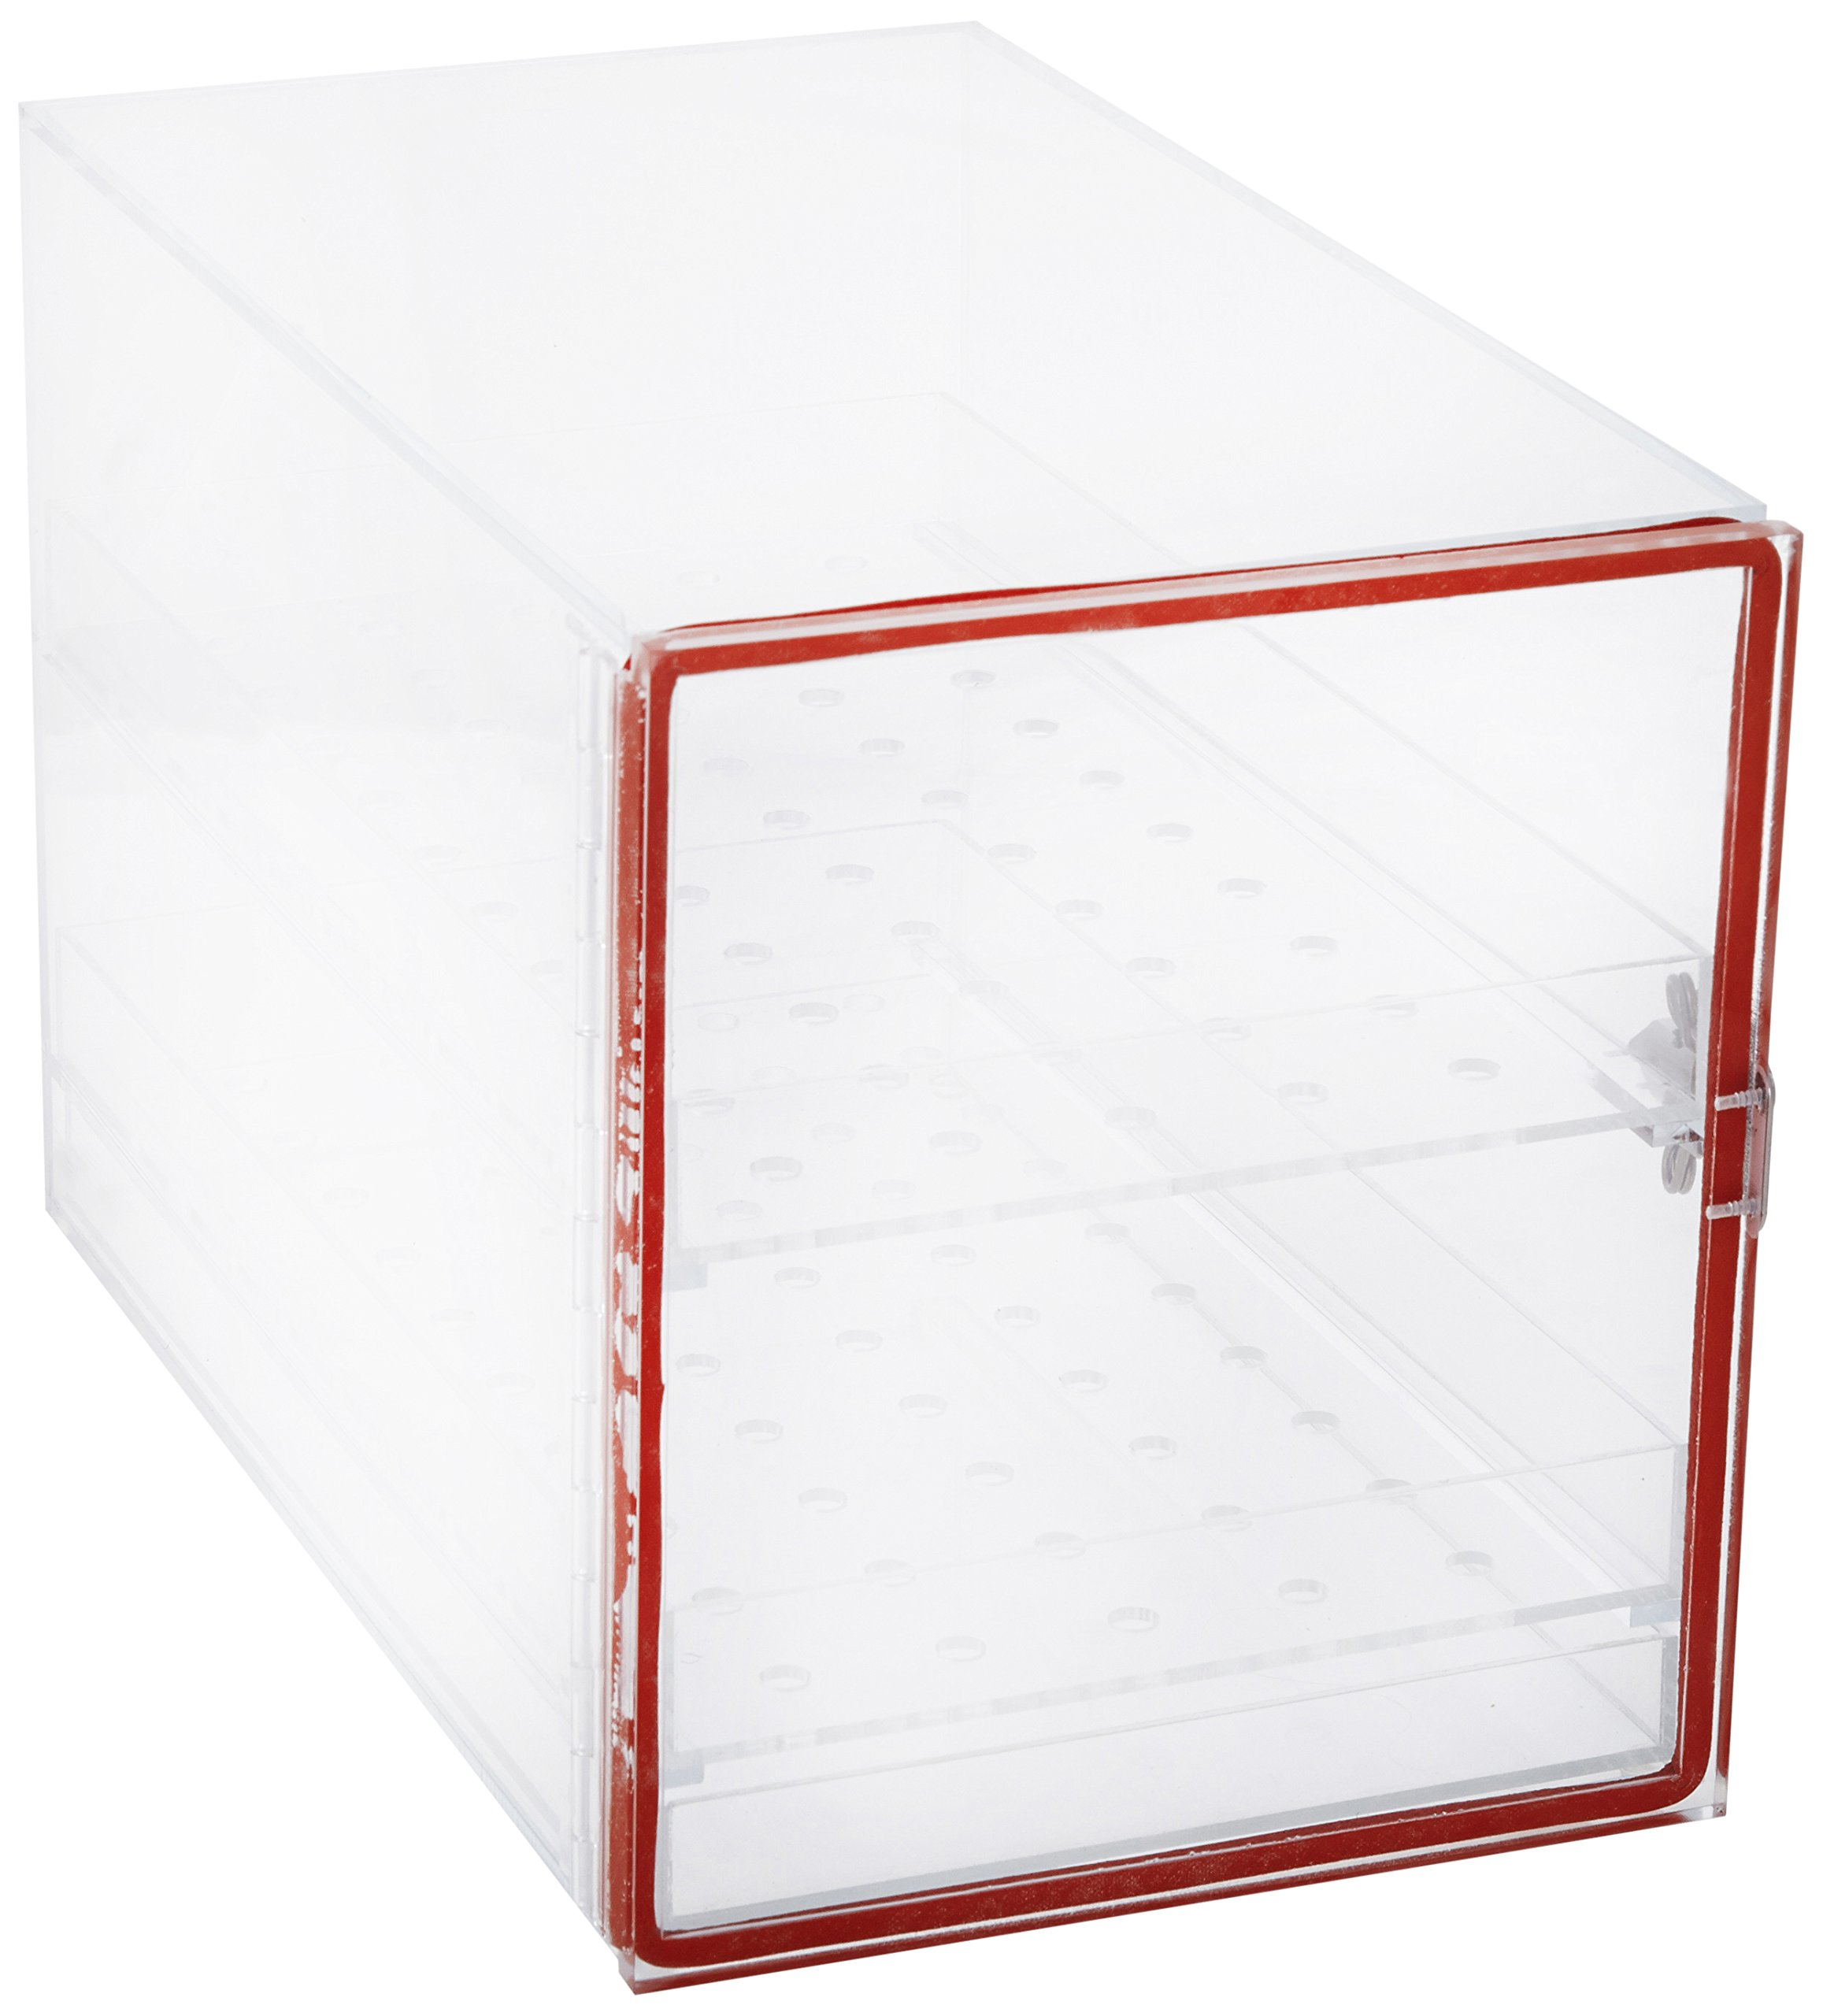 Dynalon 1212U91EA 143115 Transparent Acrylic Large Lab Desiccator Cabinet, 16'' Length x 9'' Width x 10.5'' Height